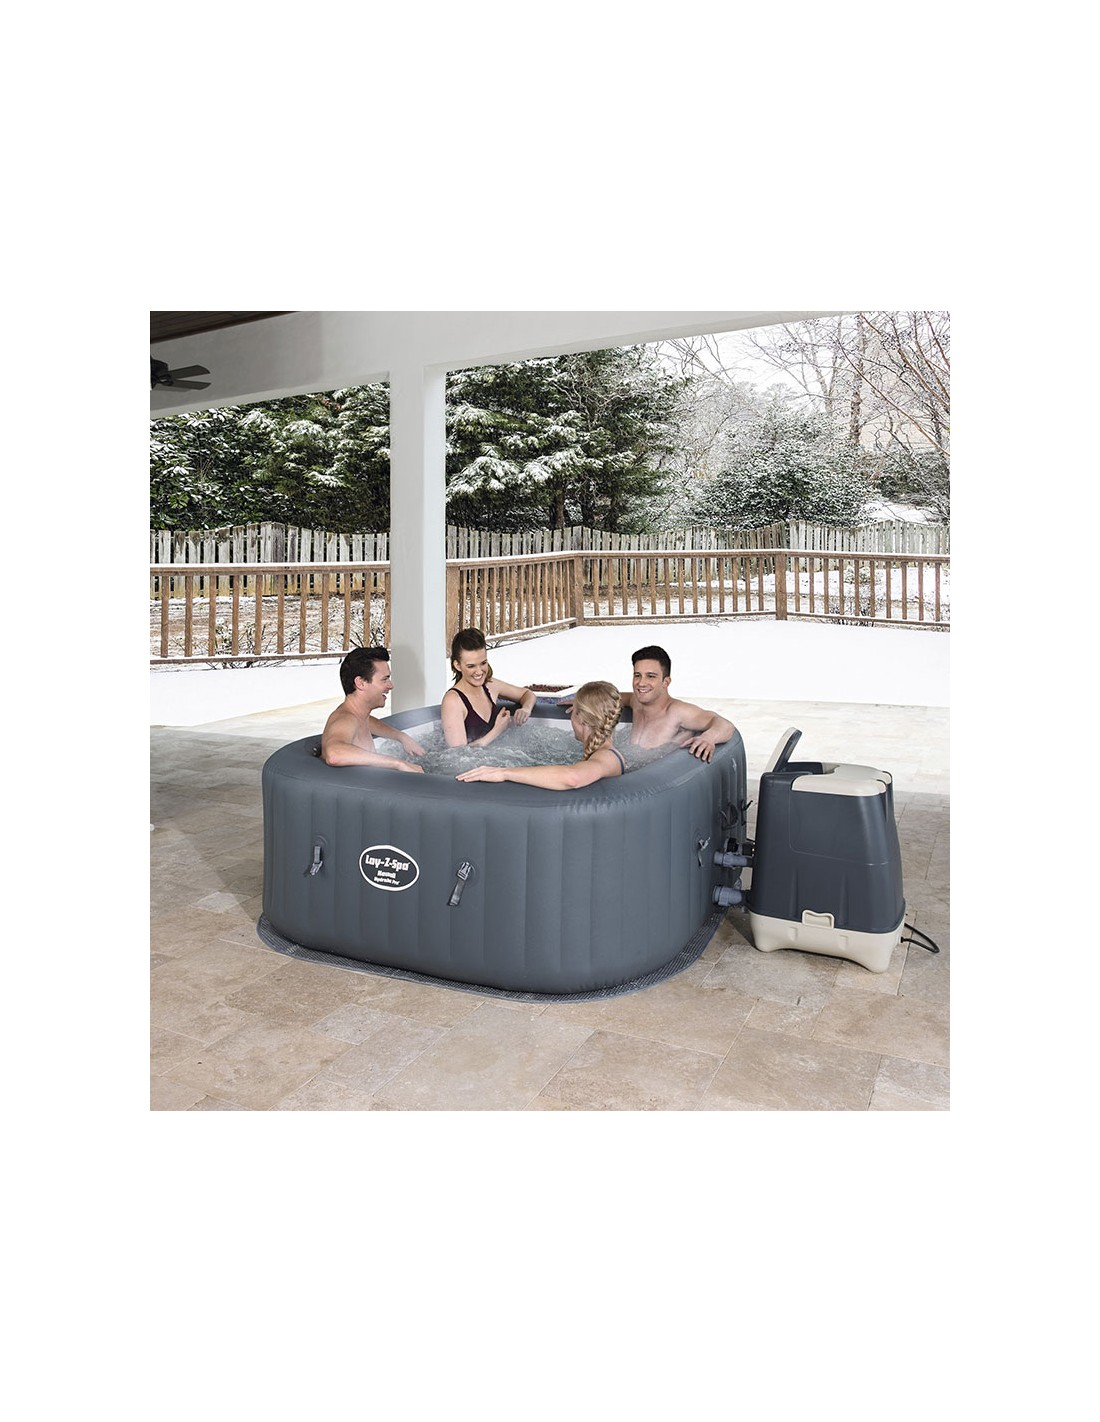 Installer Spa Gonflable Exterieur spa gonflable bestway hawaii hydrojet pro